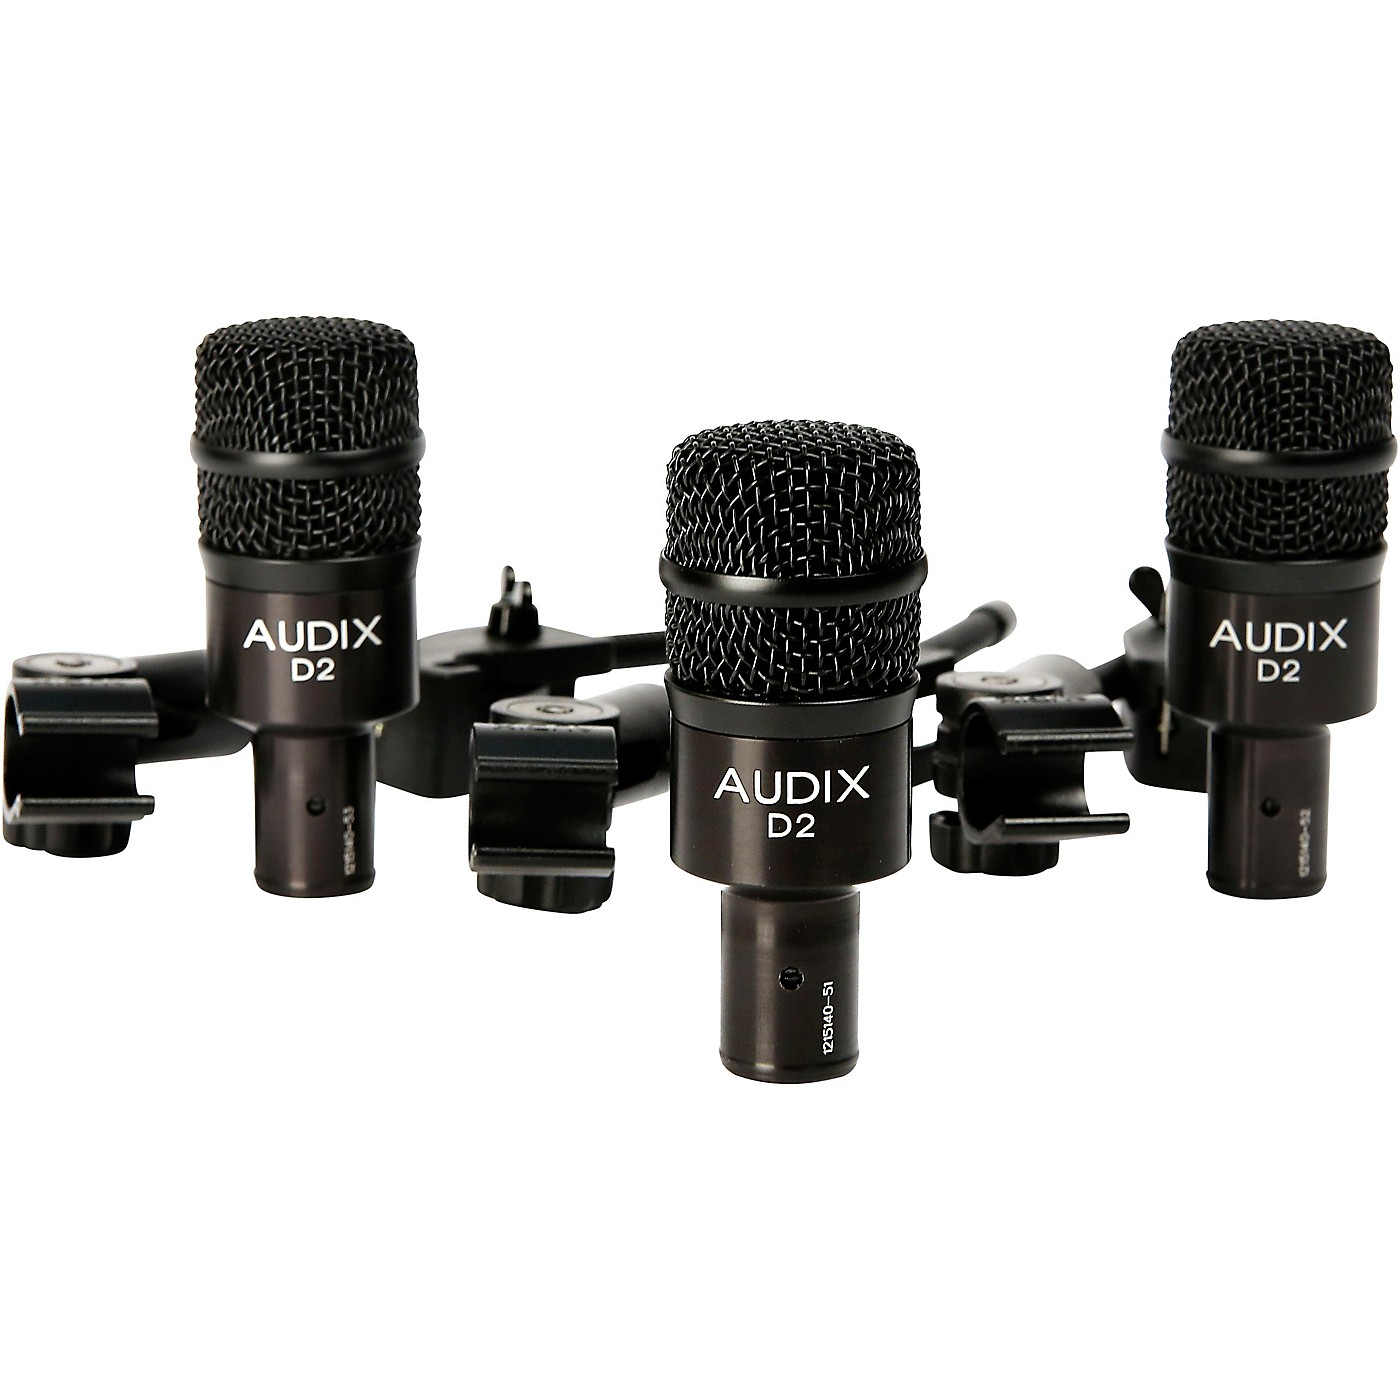 Audix D2 Drum Microphone and Clamps 3-Pack thumbnail